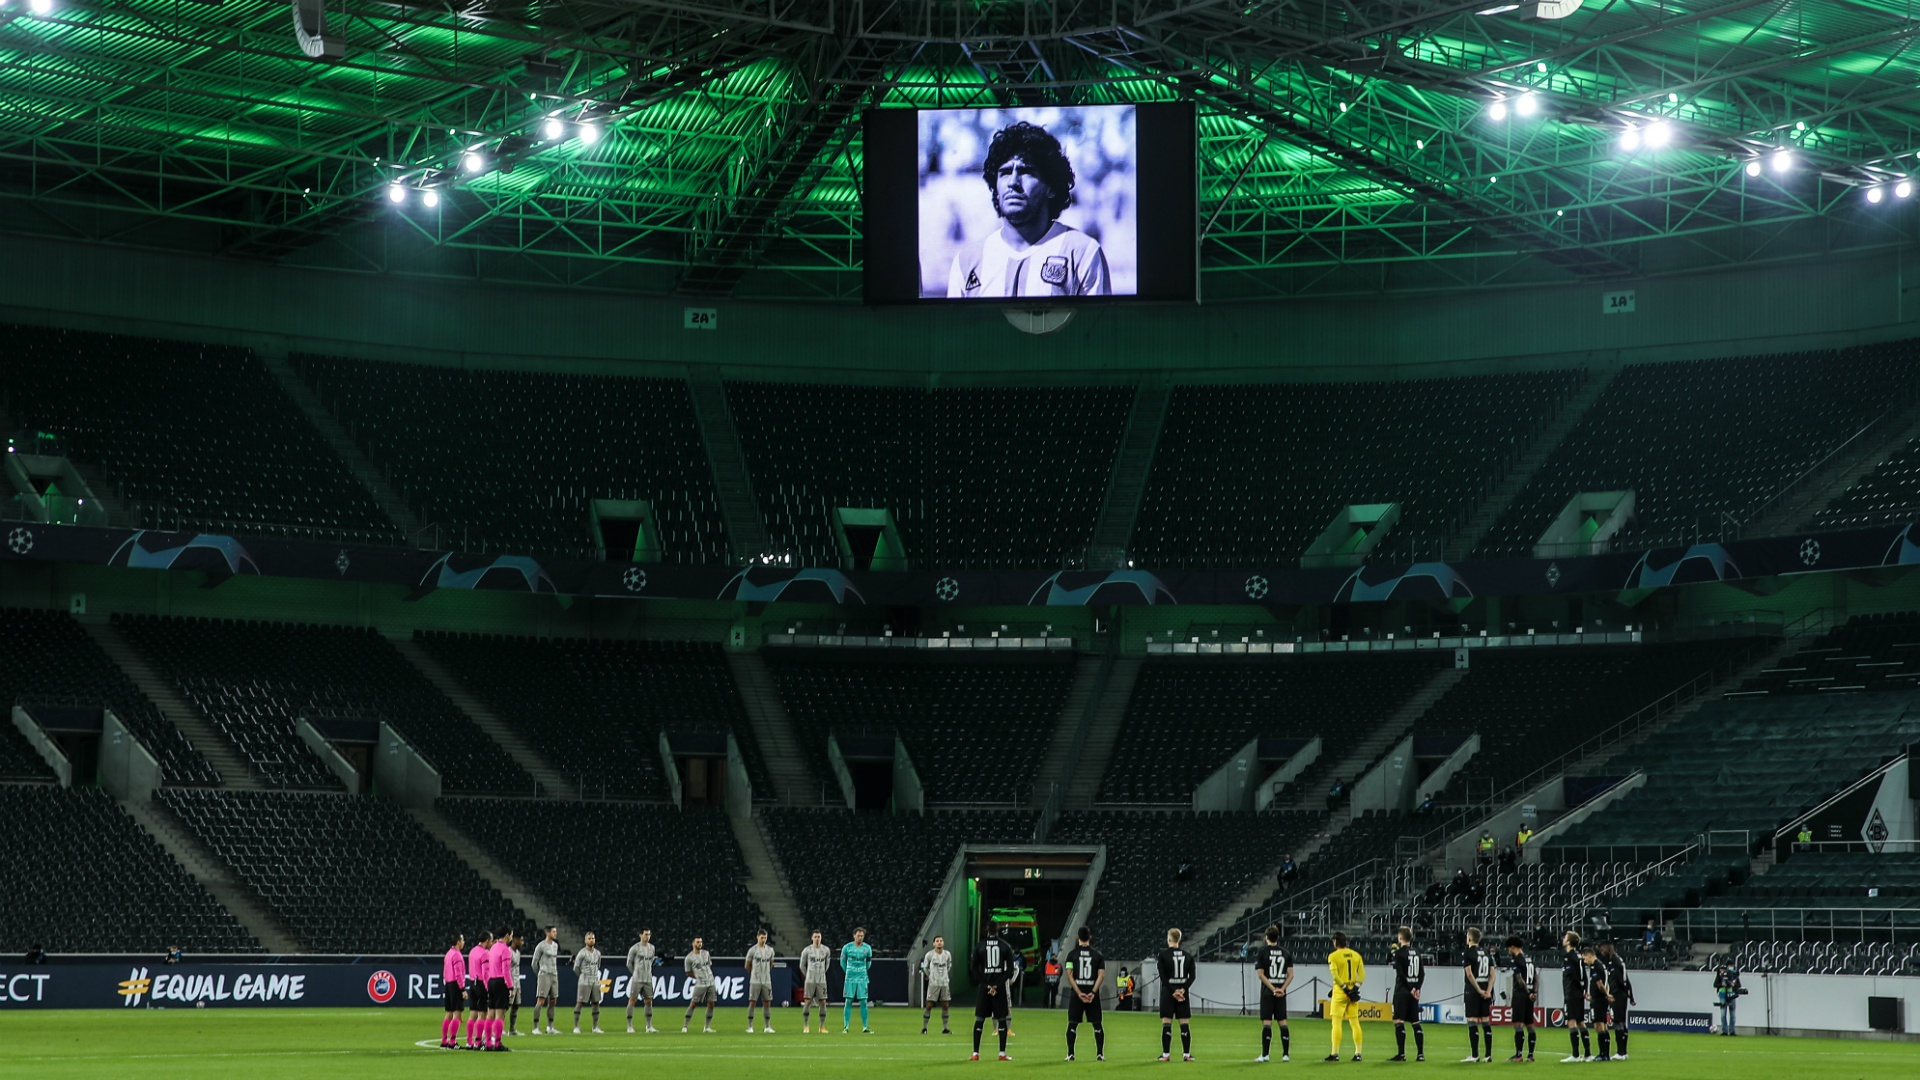 Diego Maradona dies: UEFA to hold a minute's silence to honour Argentina great